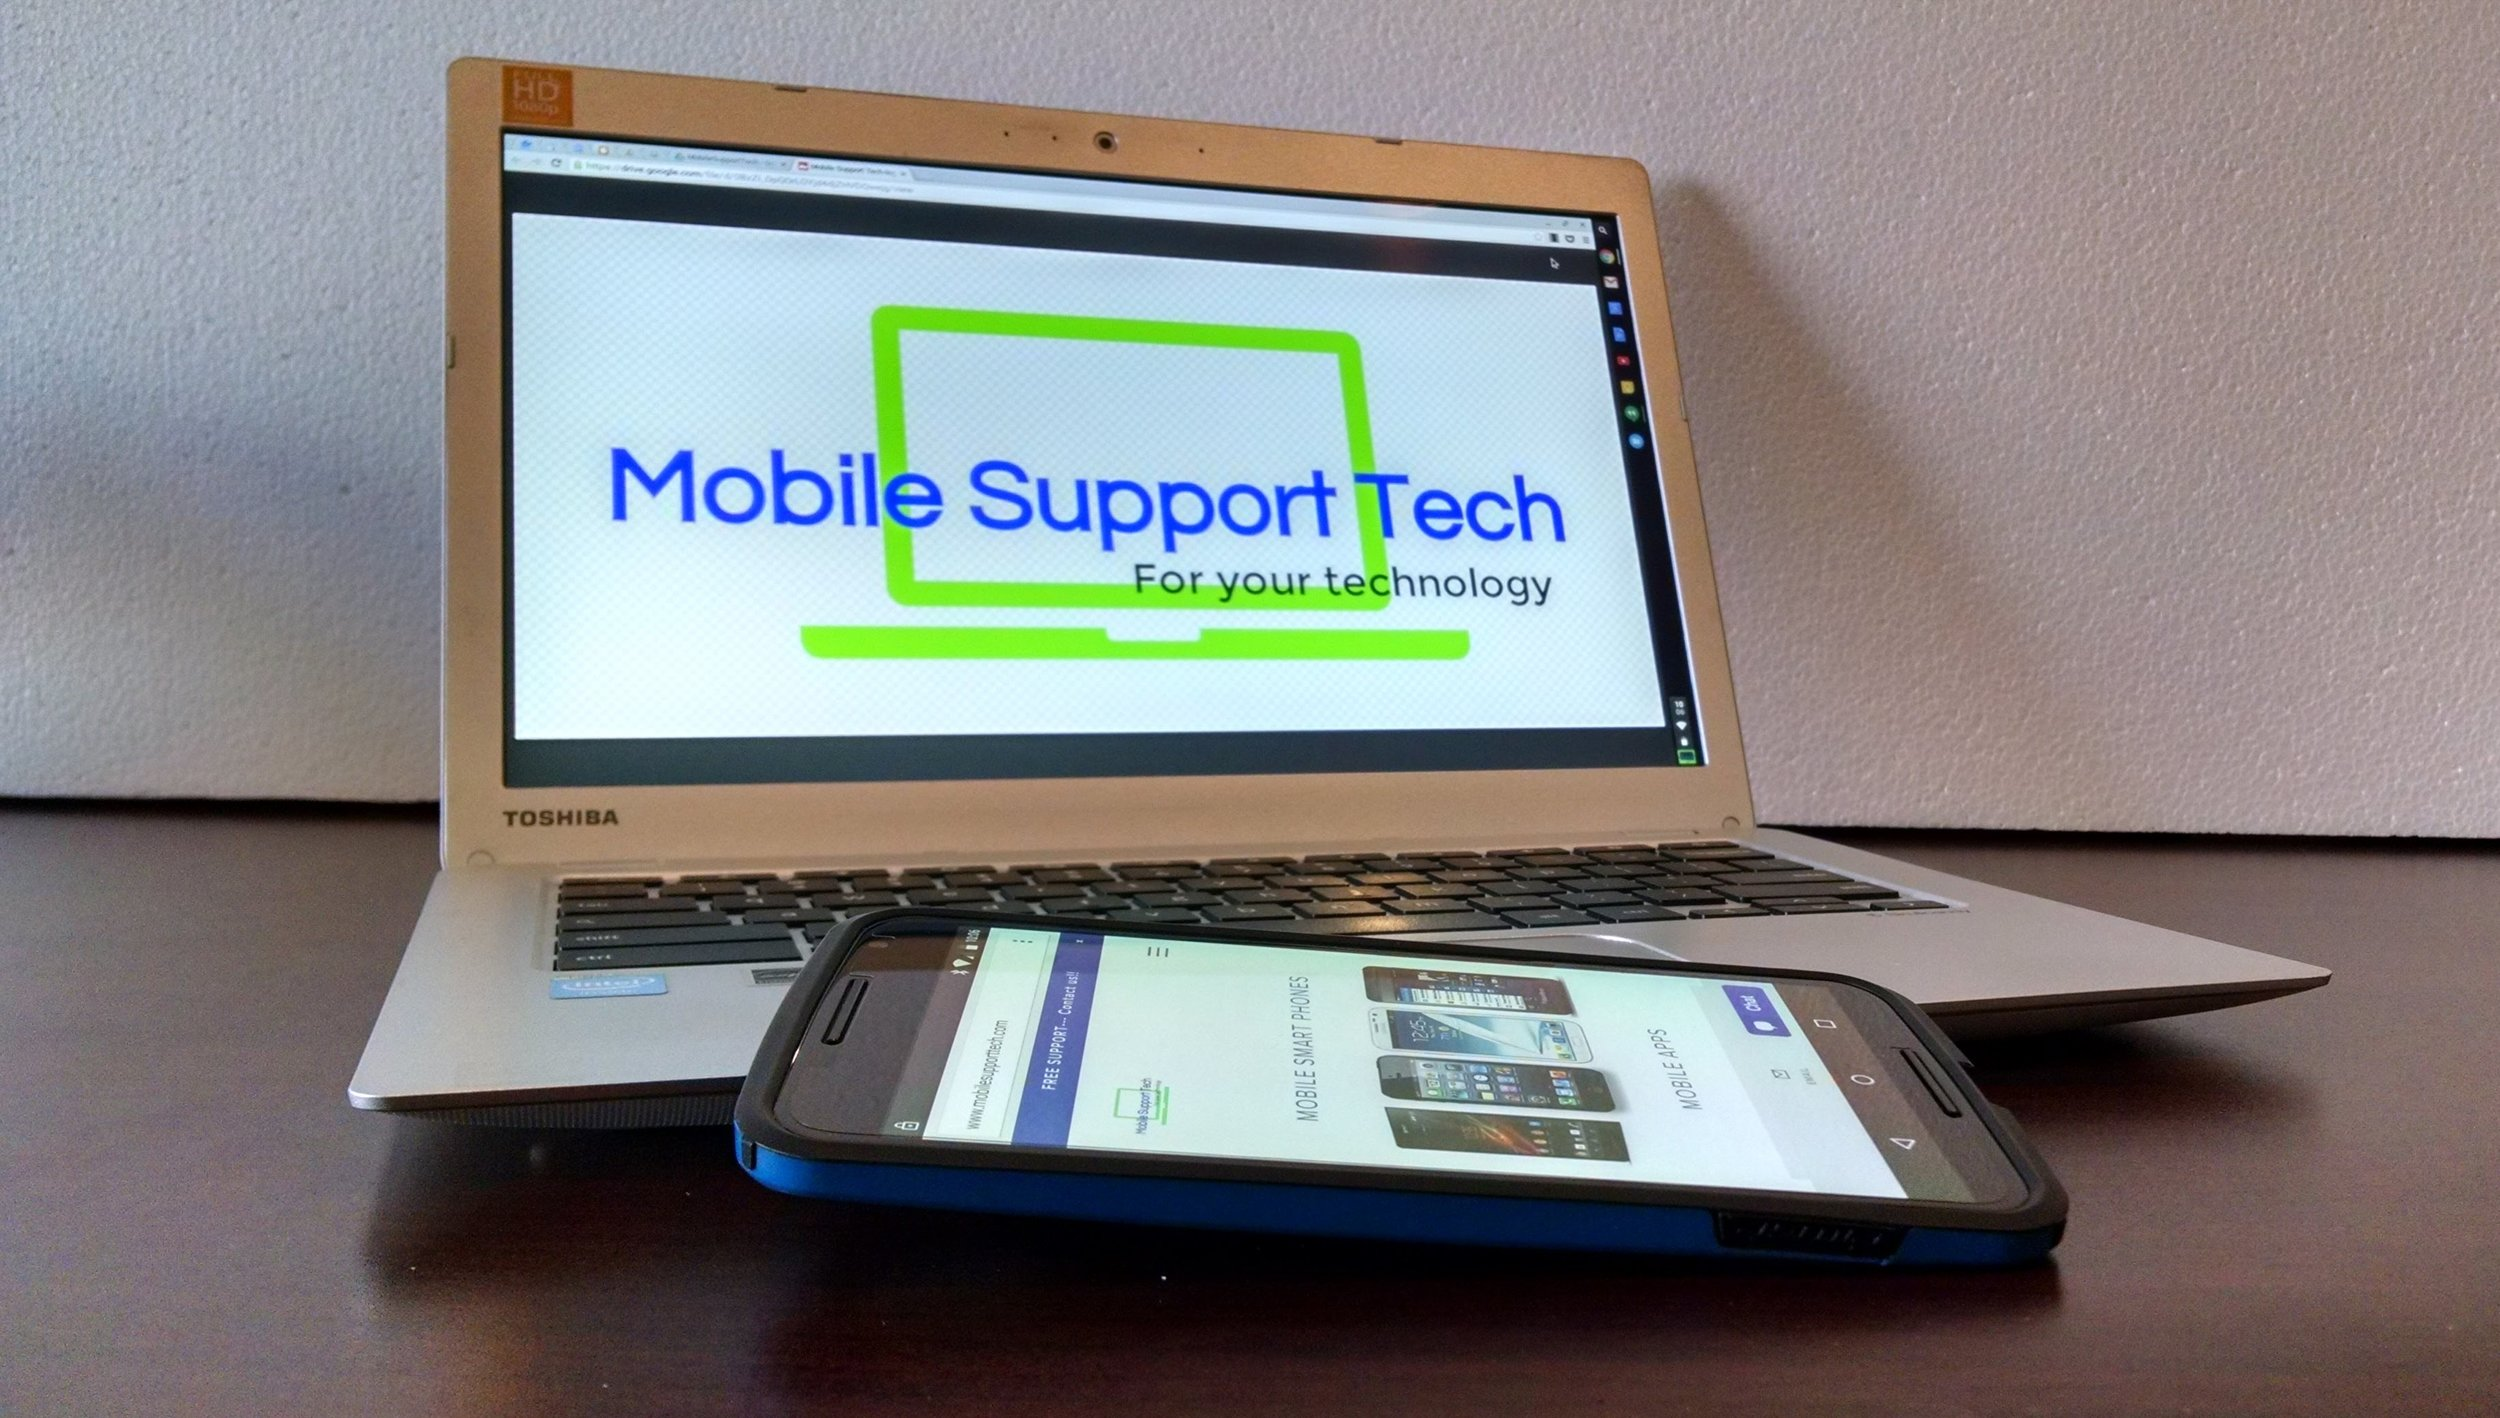 COMPUTER SUPPORT - Computer repair for your slowing down? Virus? Malware? Bad Windows updates? Are you trying to decide to get a Windows PC, Mac or Chromebook? I can help make your buying decision easier for you and tell you which one will help you the most.